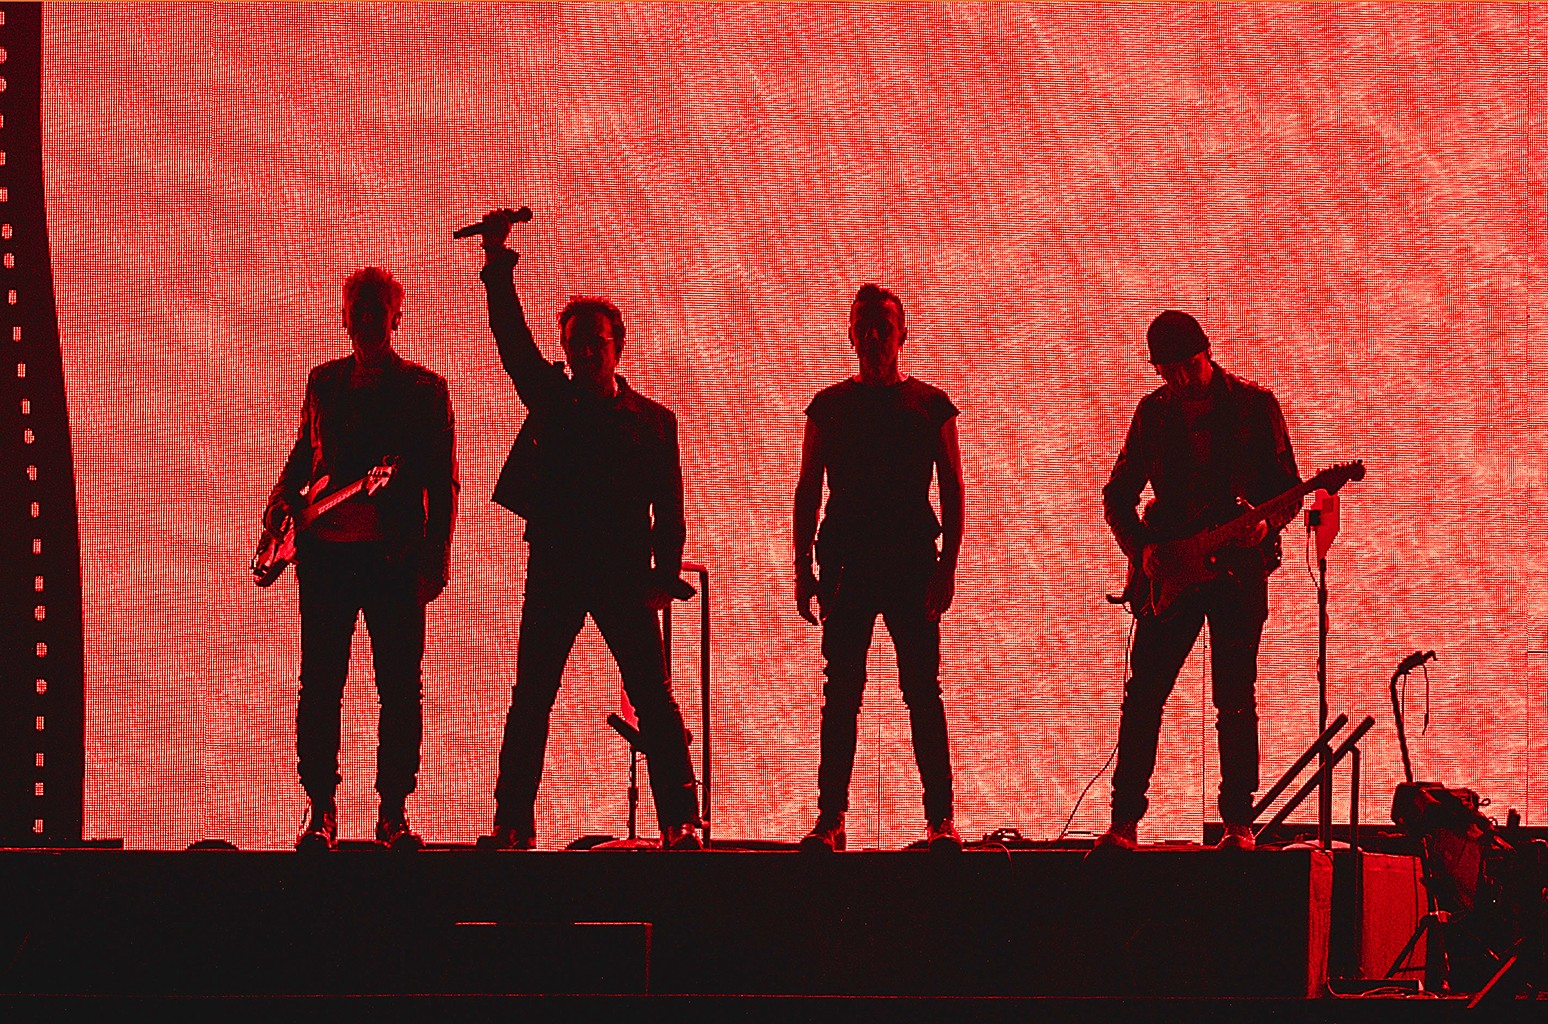 (L-R) Adam Clayton, Bono, Larry Mullen Jr., and The Edge of U2 perform in concert during The Joshua Tree Tour 2017 at NRG Stadium on May 24, 2017 in Houston, Texas.